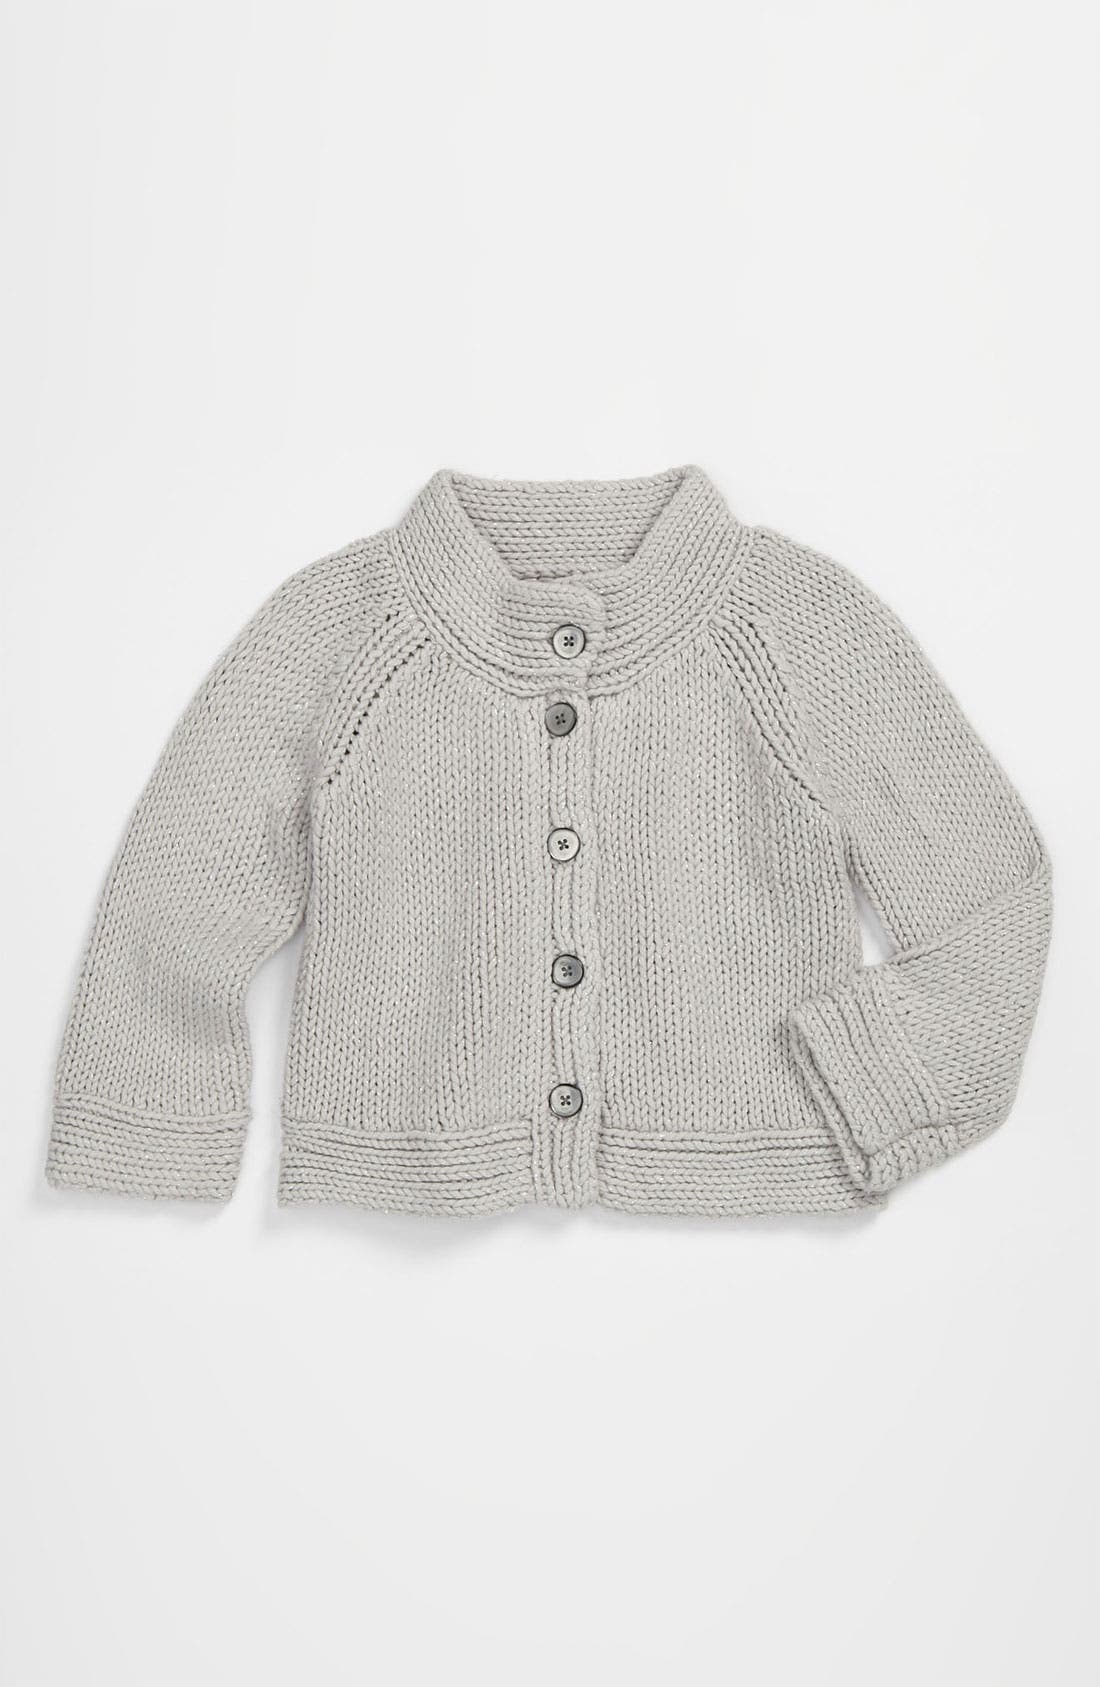 Main Image - Tea Collection 'Sparkle Chic' Sweater (Little Girls & Big Girls)